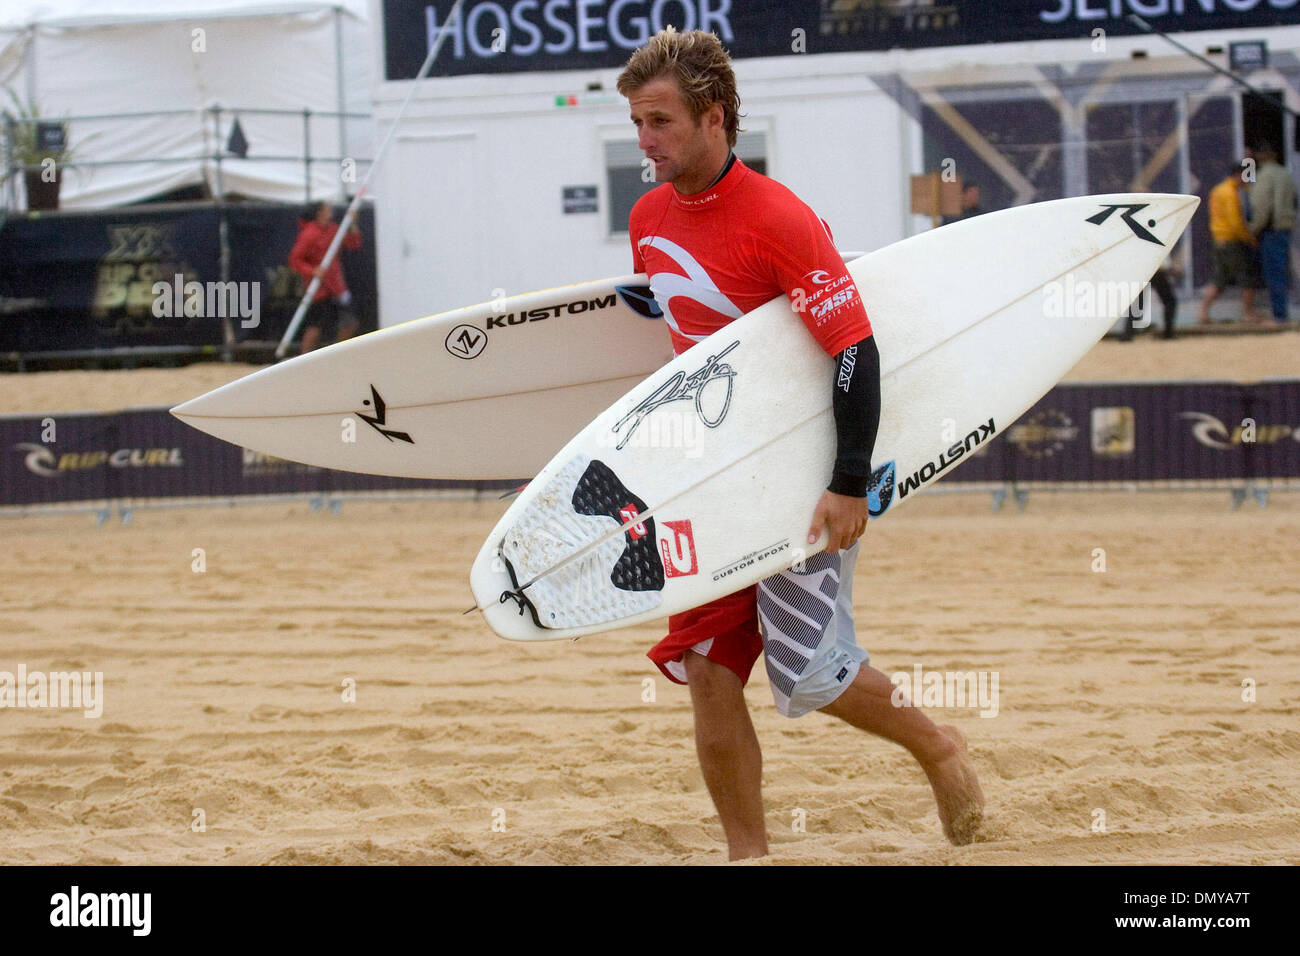 Aug 24, 2006; Hossegor, FRANCE; JOSH KERR (Coolangatta, Gold Coast, Australia) (pictured) gets ready to paddle out for his round two heat in what organisers have called onshore stormy conditions.  After two days of no competitive surfing due to lack of surf, round two was restarted yesterday and continues today in rain driven by gale force winds resulting in the testing surf. The 2 - Stock Image